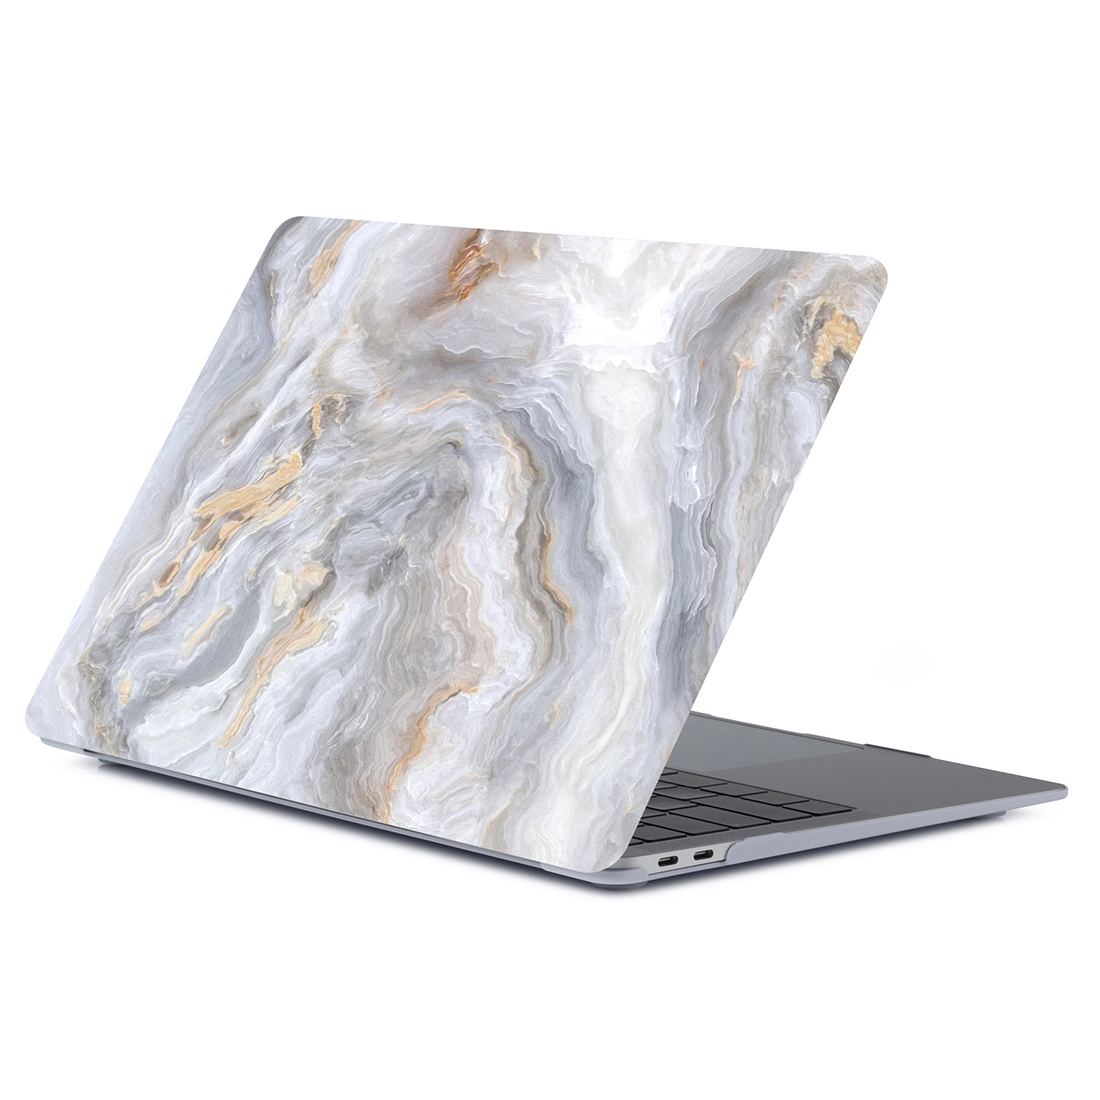 Printing Matte Laptop Protective Case for MacBook Air 11.6 inch A1465 (2012 - 2015) / A1370 (2010 - 2011) (RS-013)